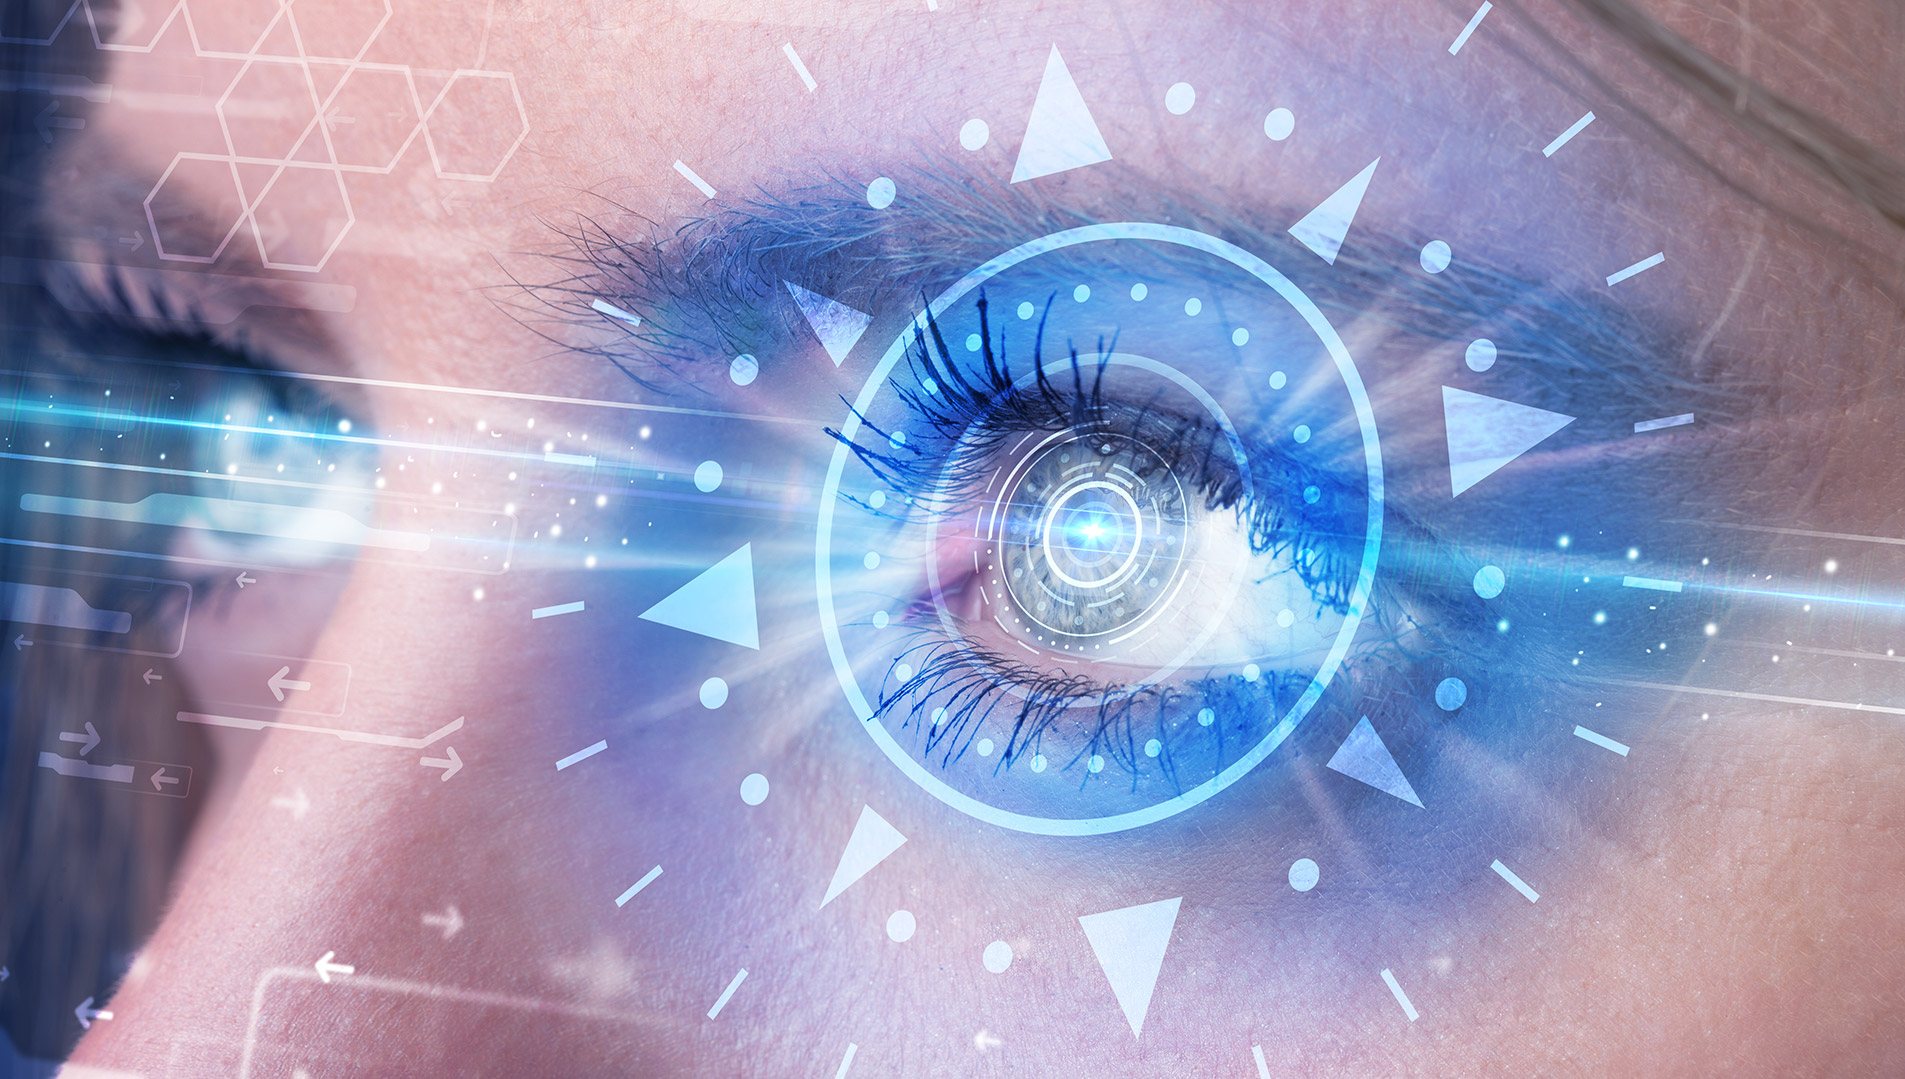 A light blue hologram emanates from a woman's eye.